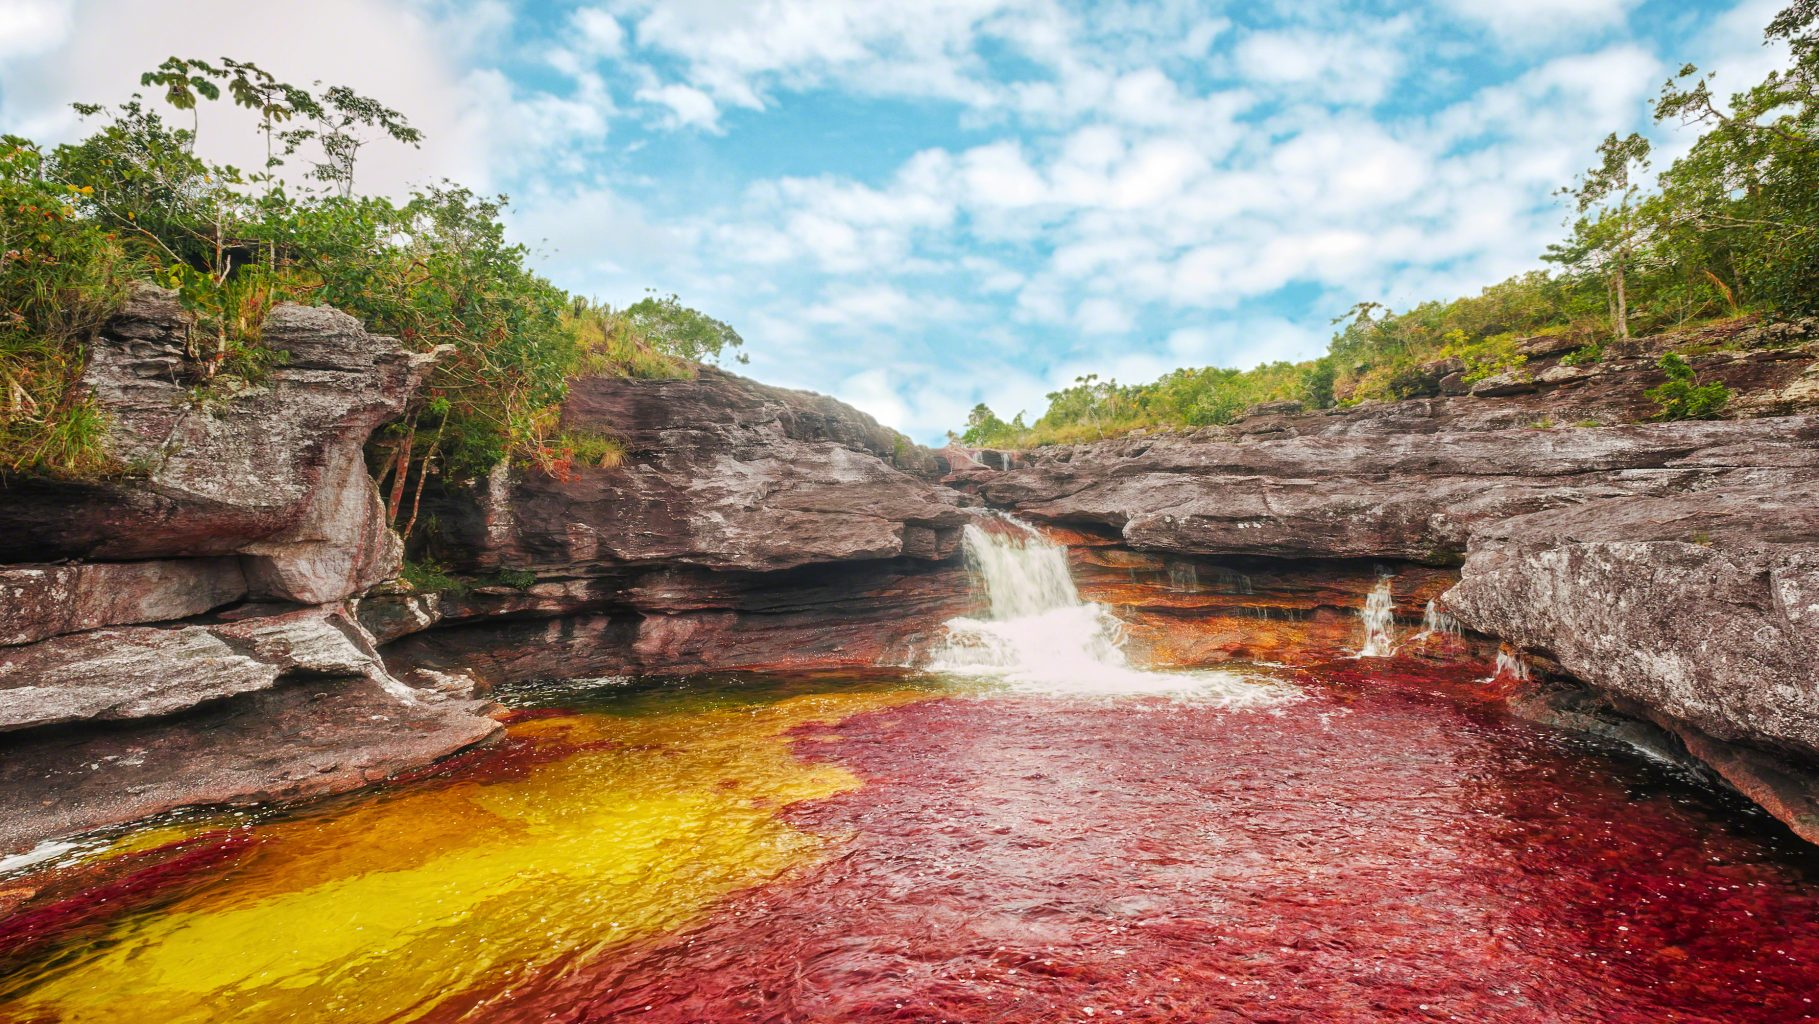 Image: Caño Cristales, also known as the Rainbow River, is one of the magnificent sites hidden in the outdoor world.